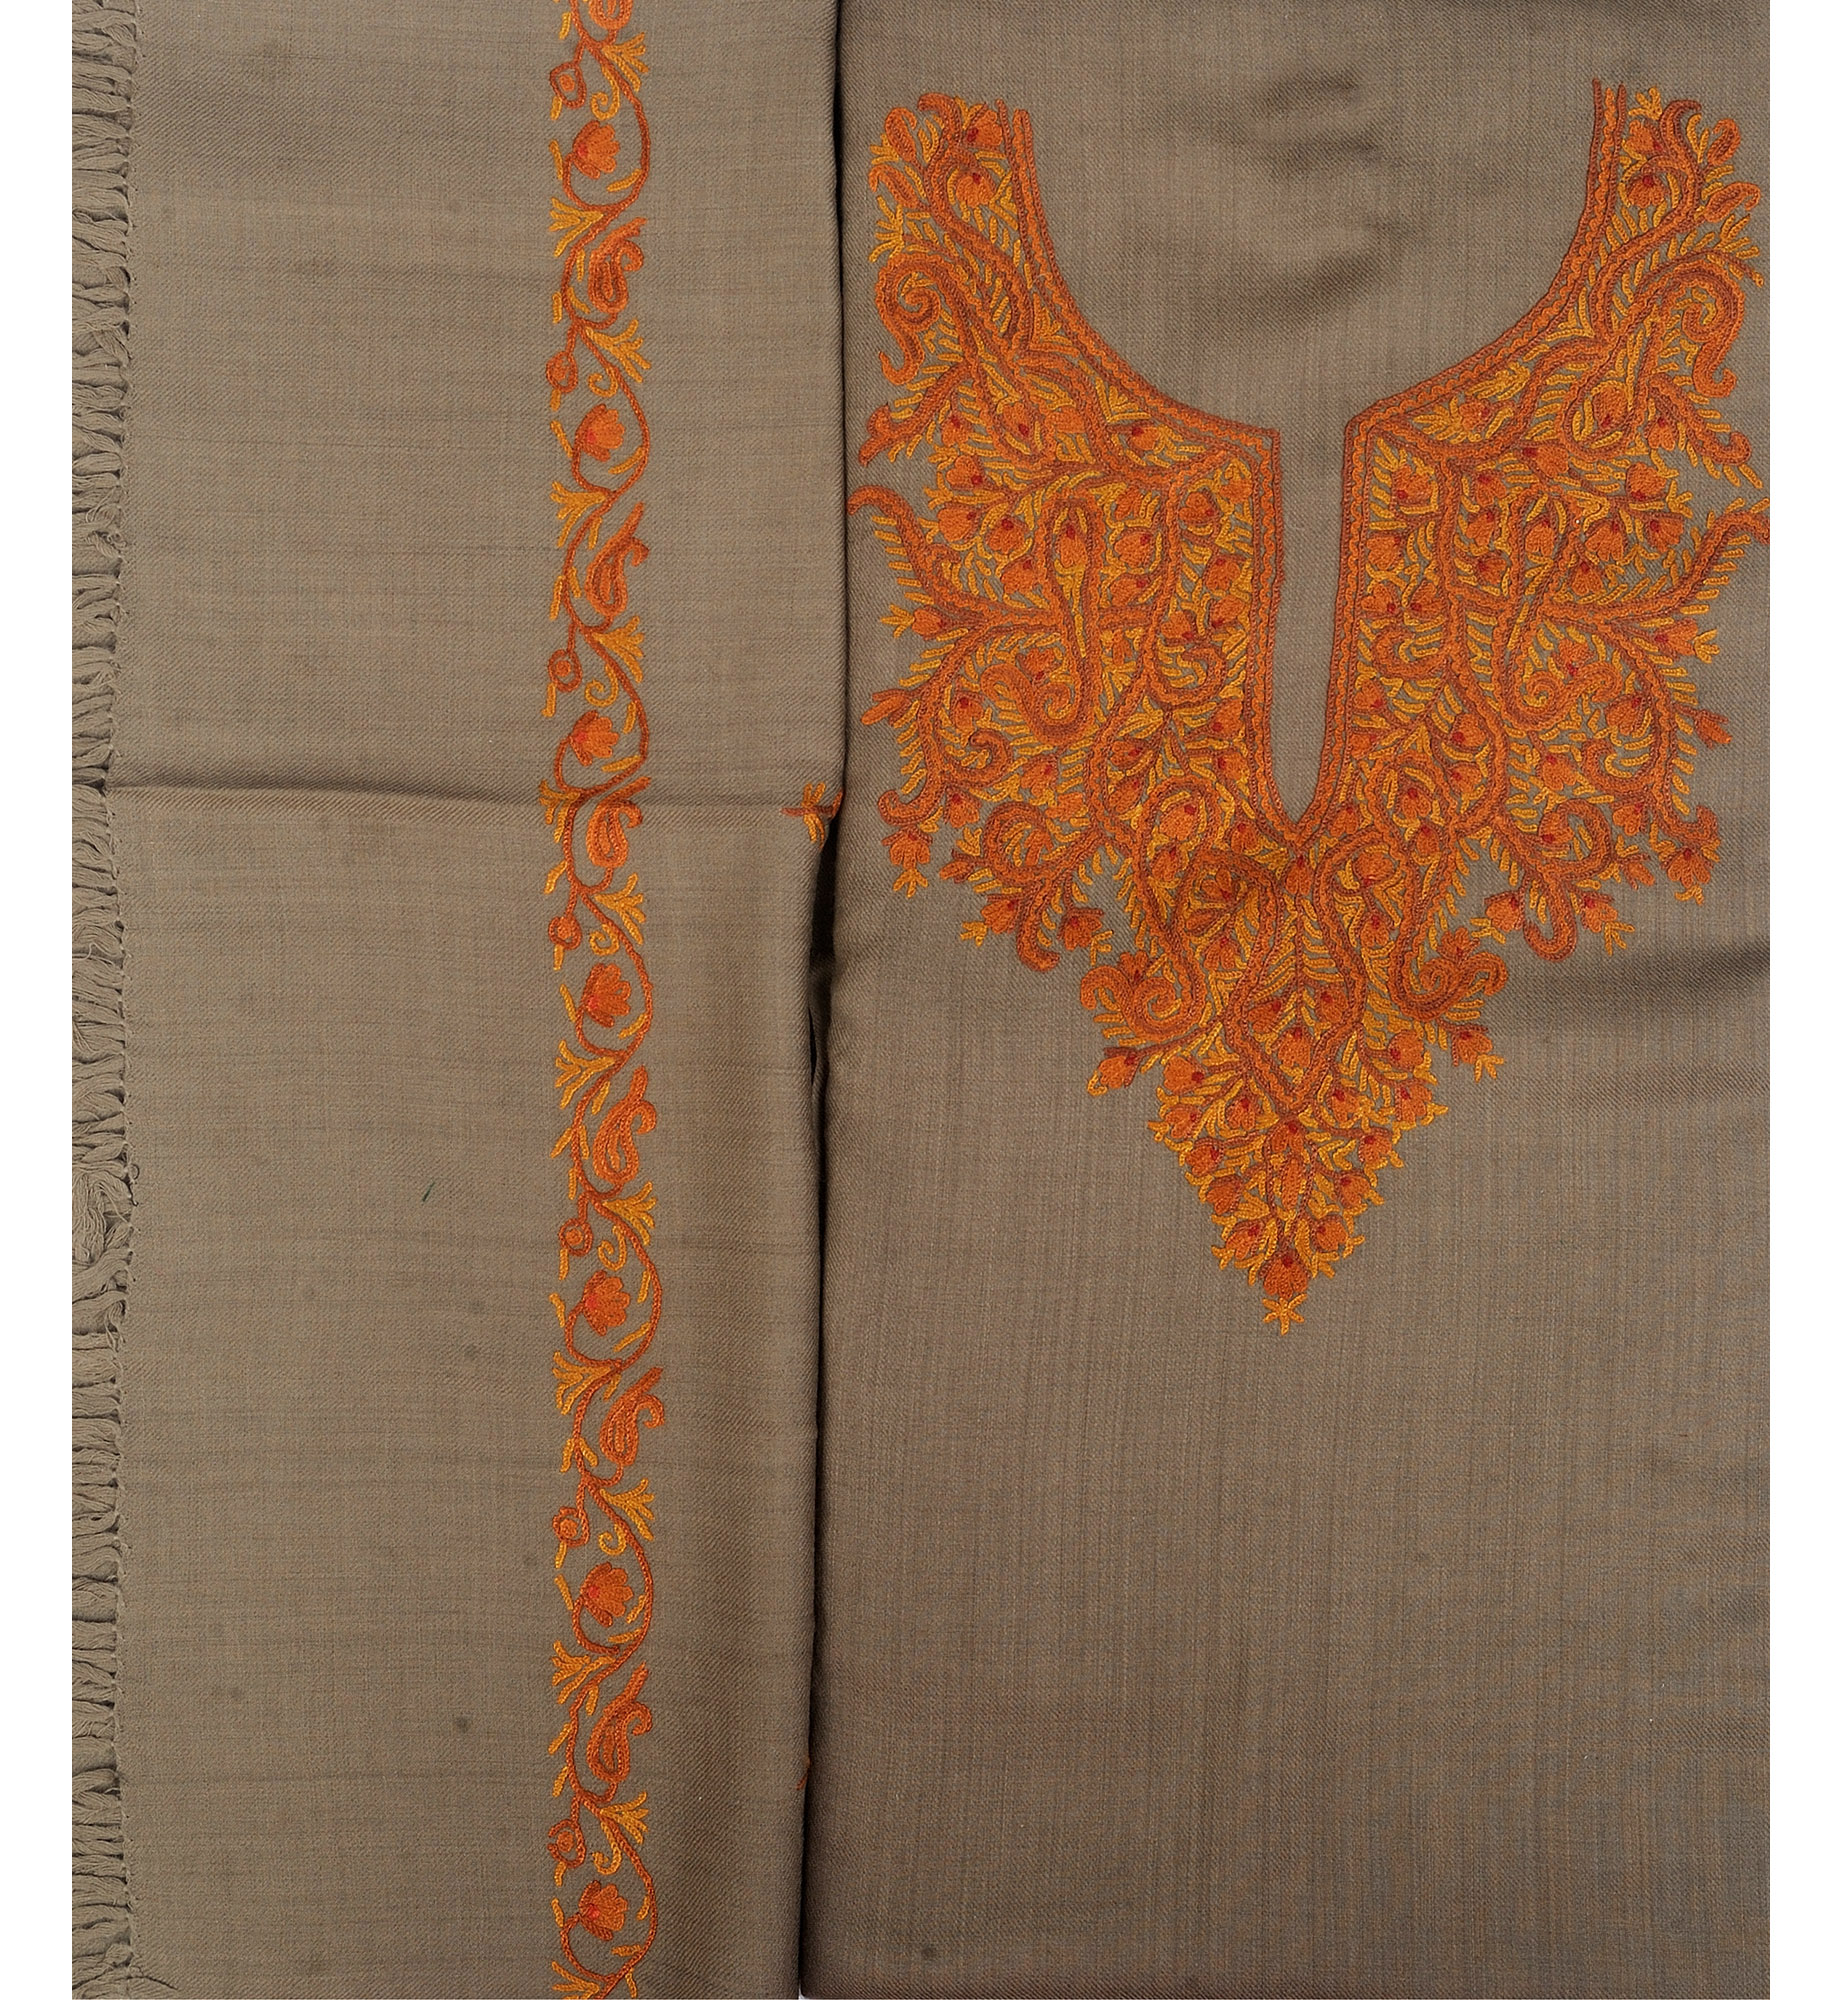 Timber wolf salwar kameez fabric from kashmir with hand